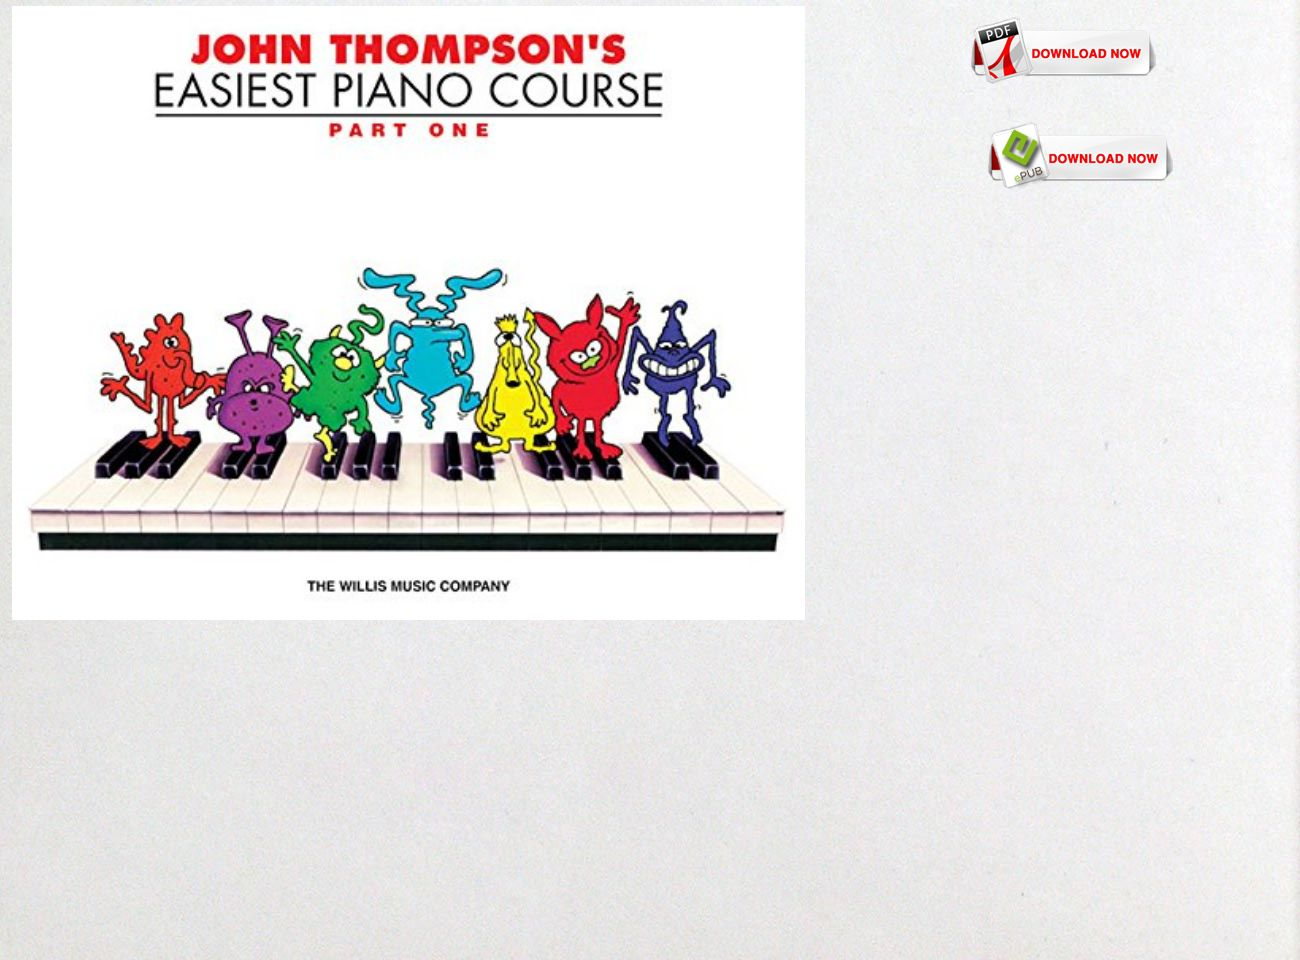 Free Download Pdf Ebook John Thompson S Easiest Piano Course Part 1